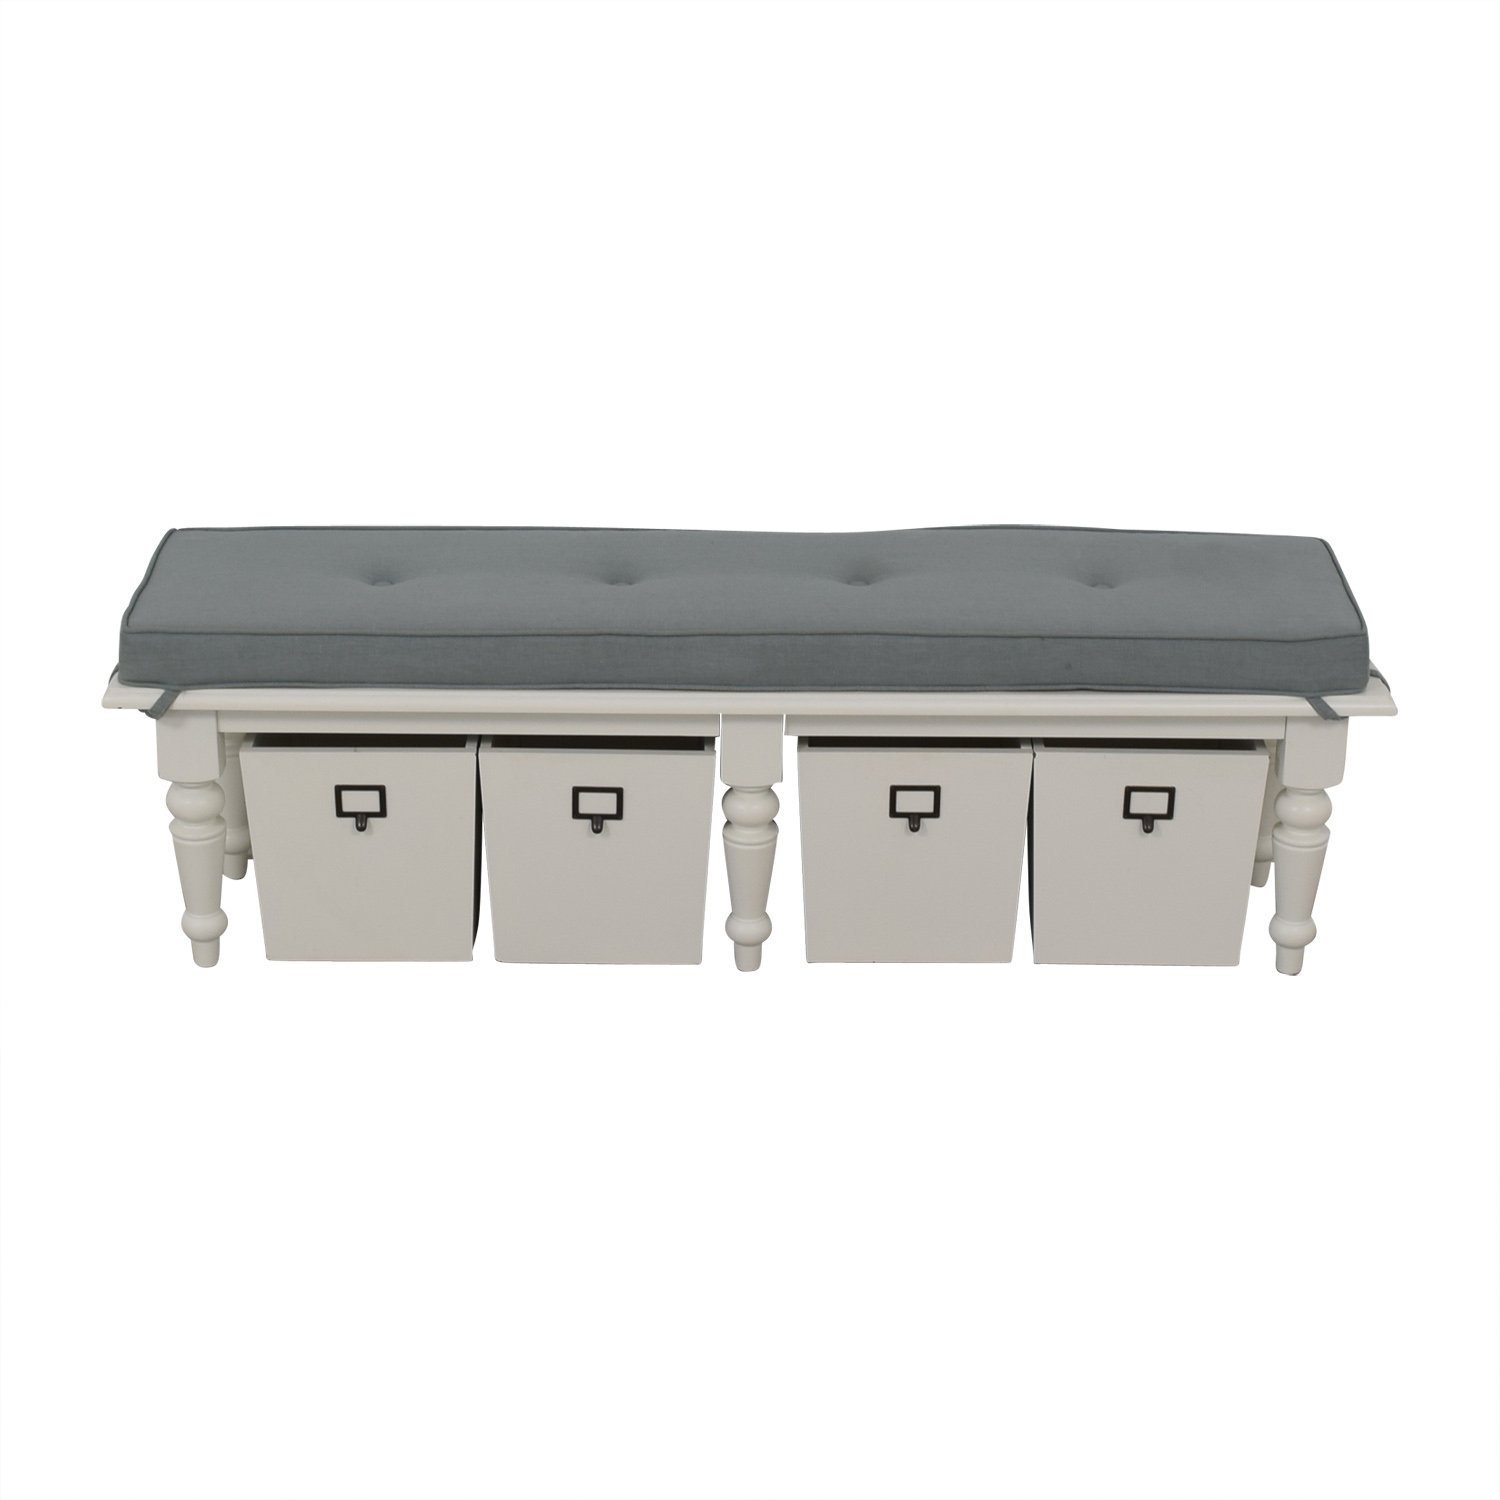 Home Goods Home Goods Grey Upholstered and White Bench with Four Storage Boxes nj